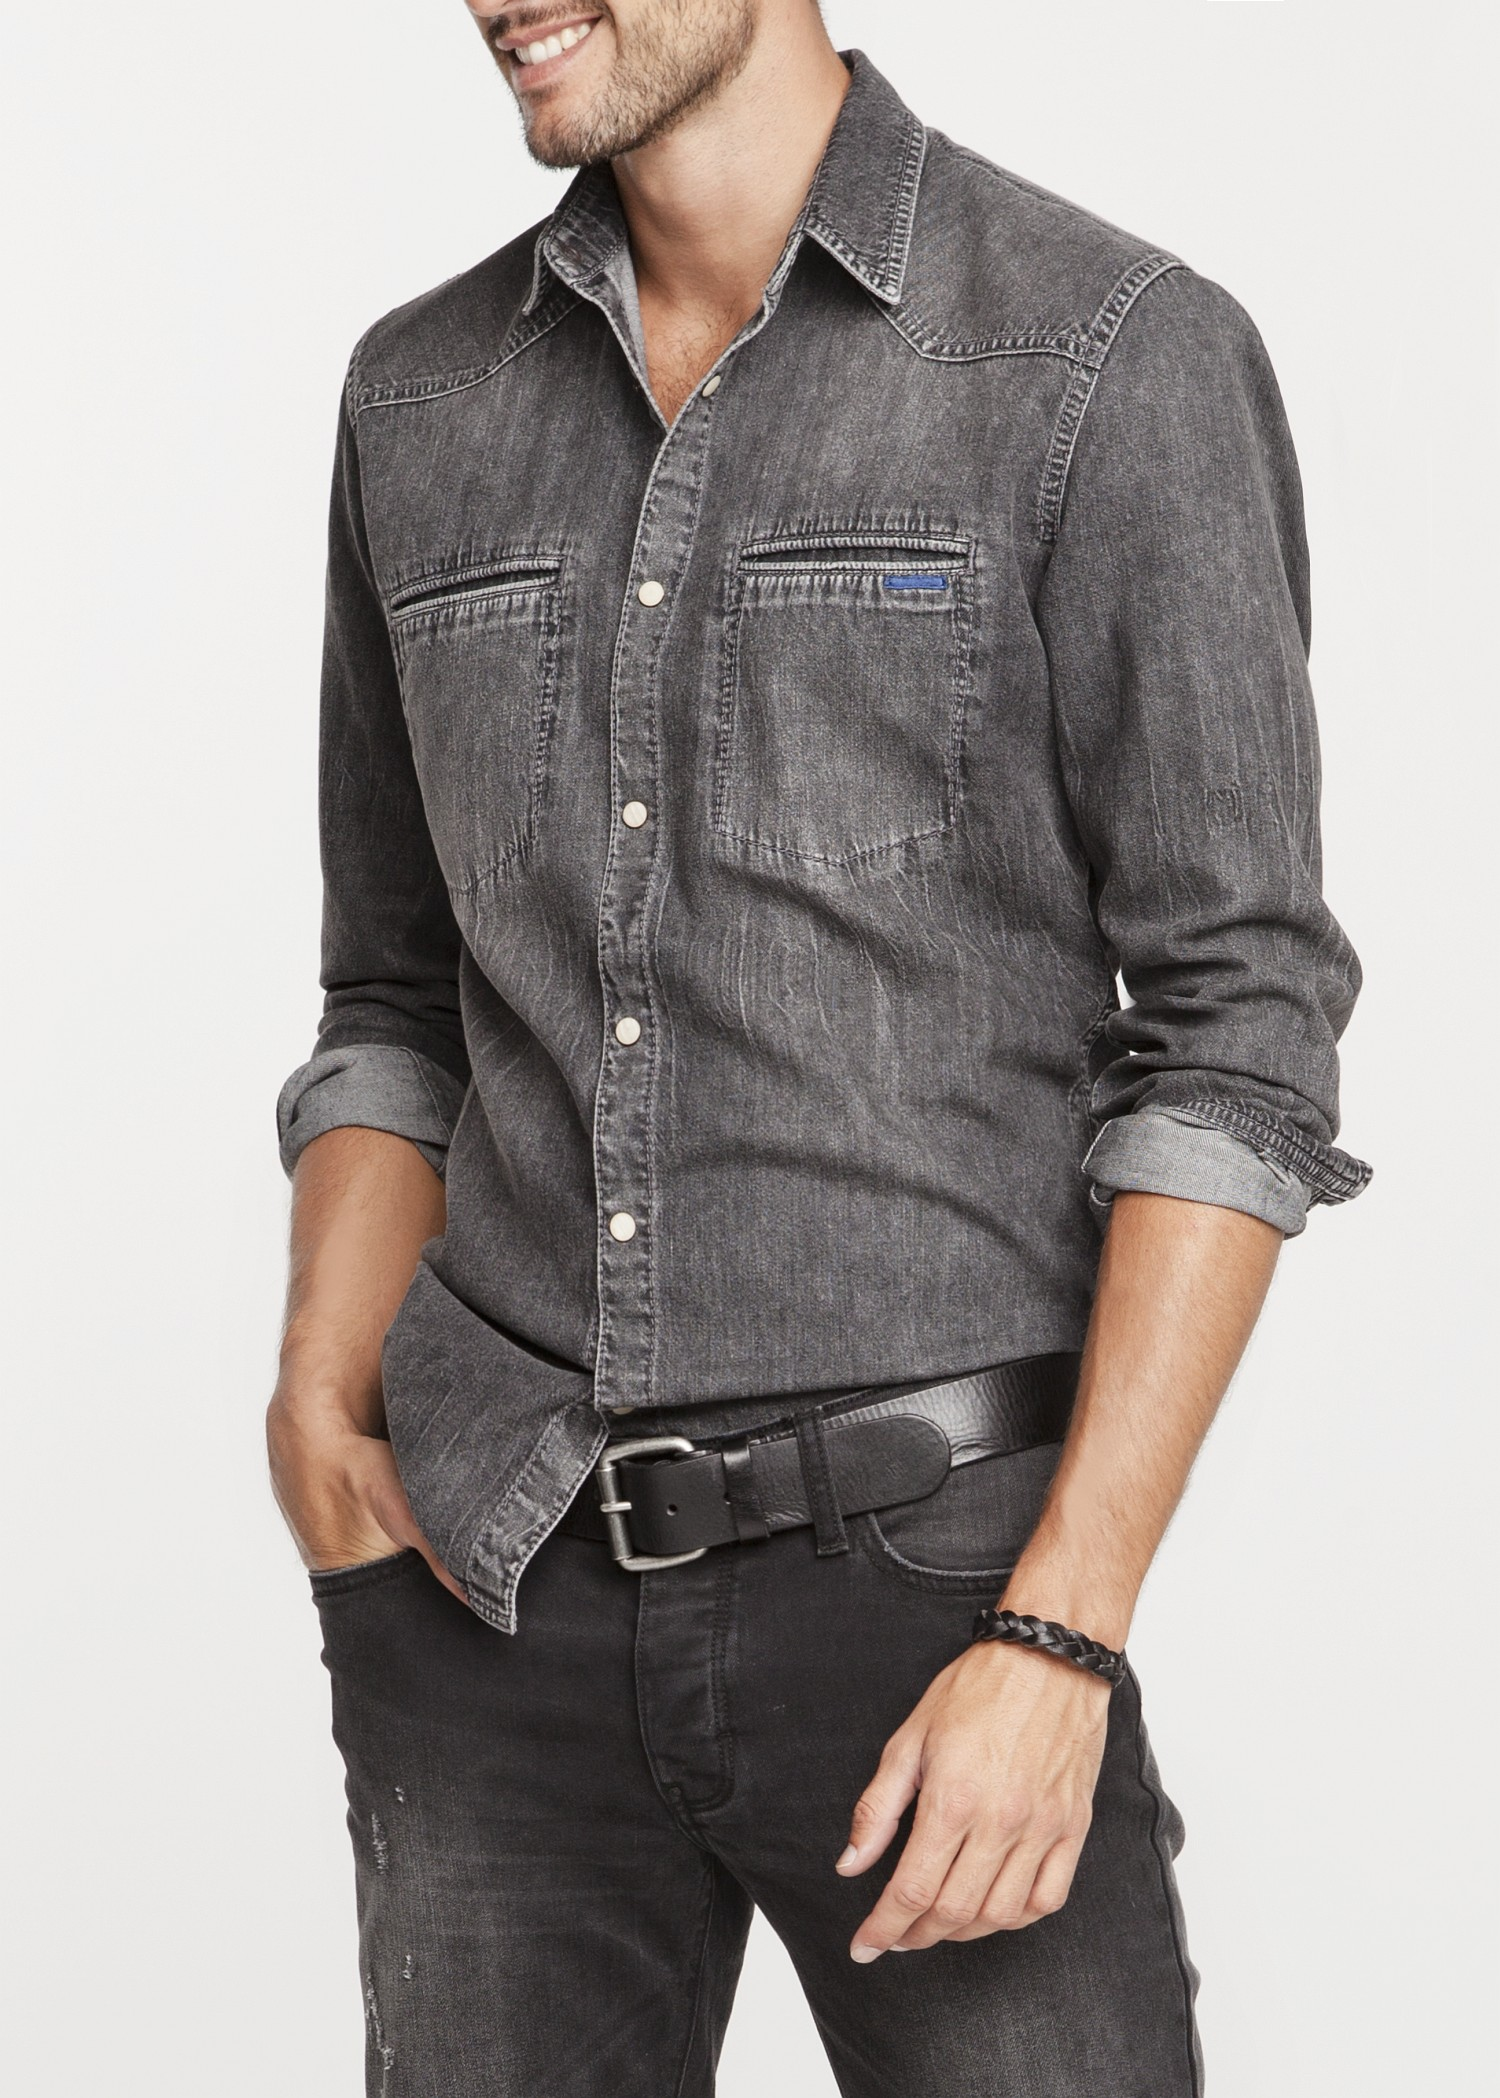 Lyst - Mango Slimfit Grey Denim Shirt in Gray for Men